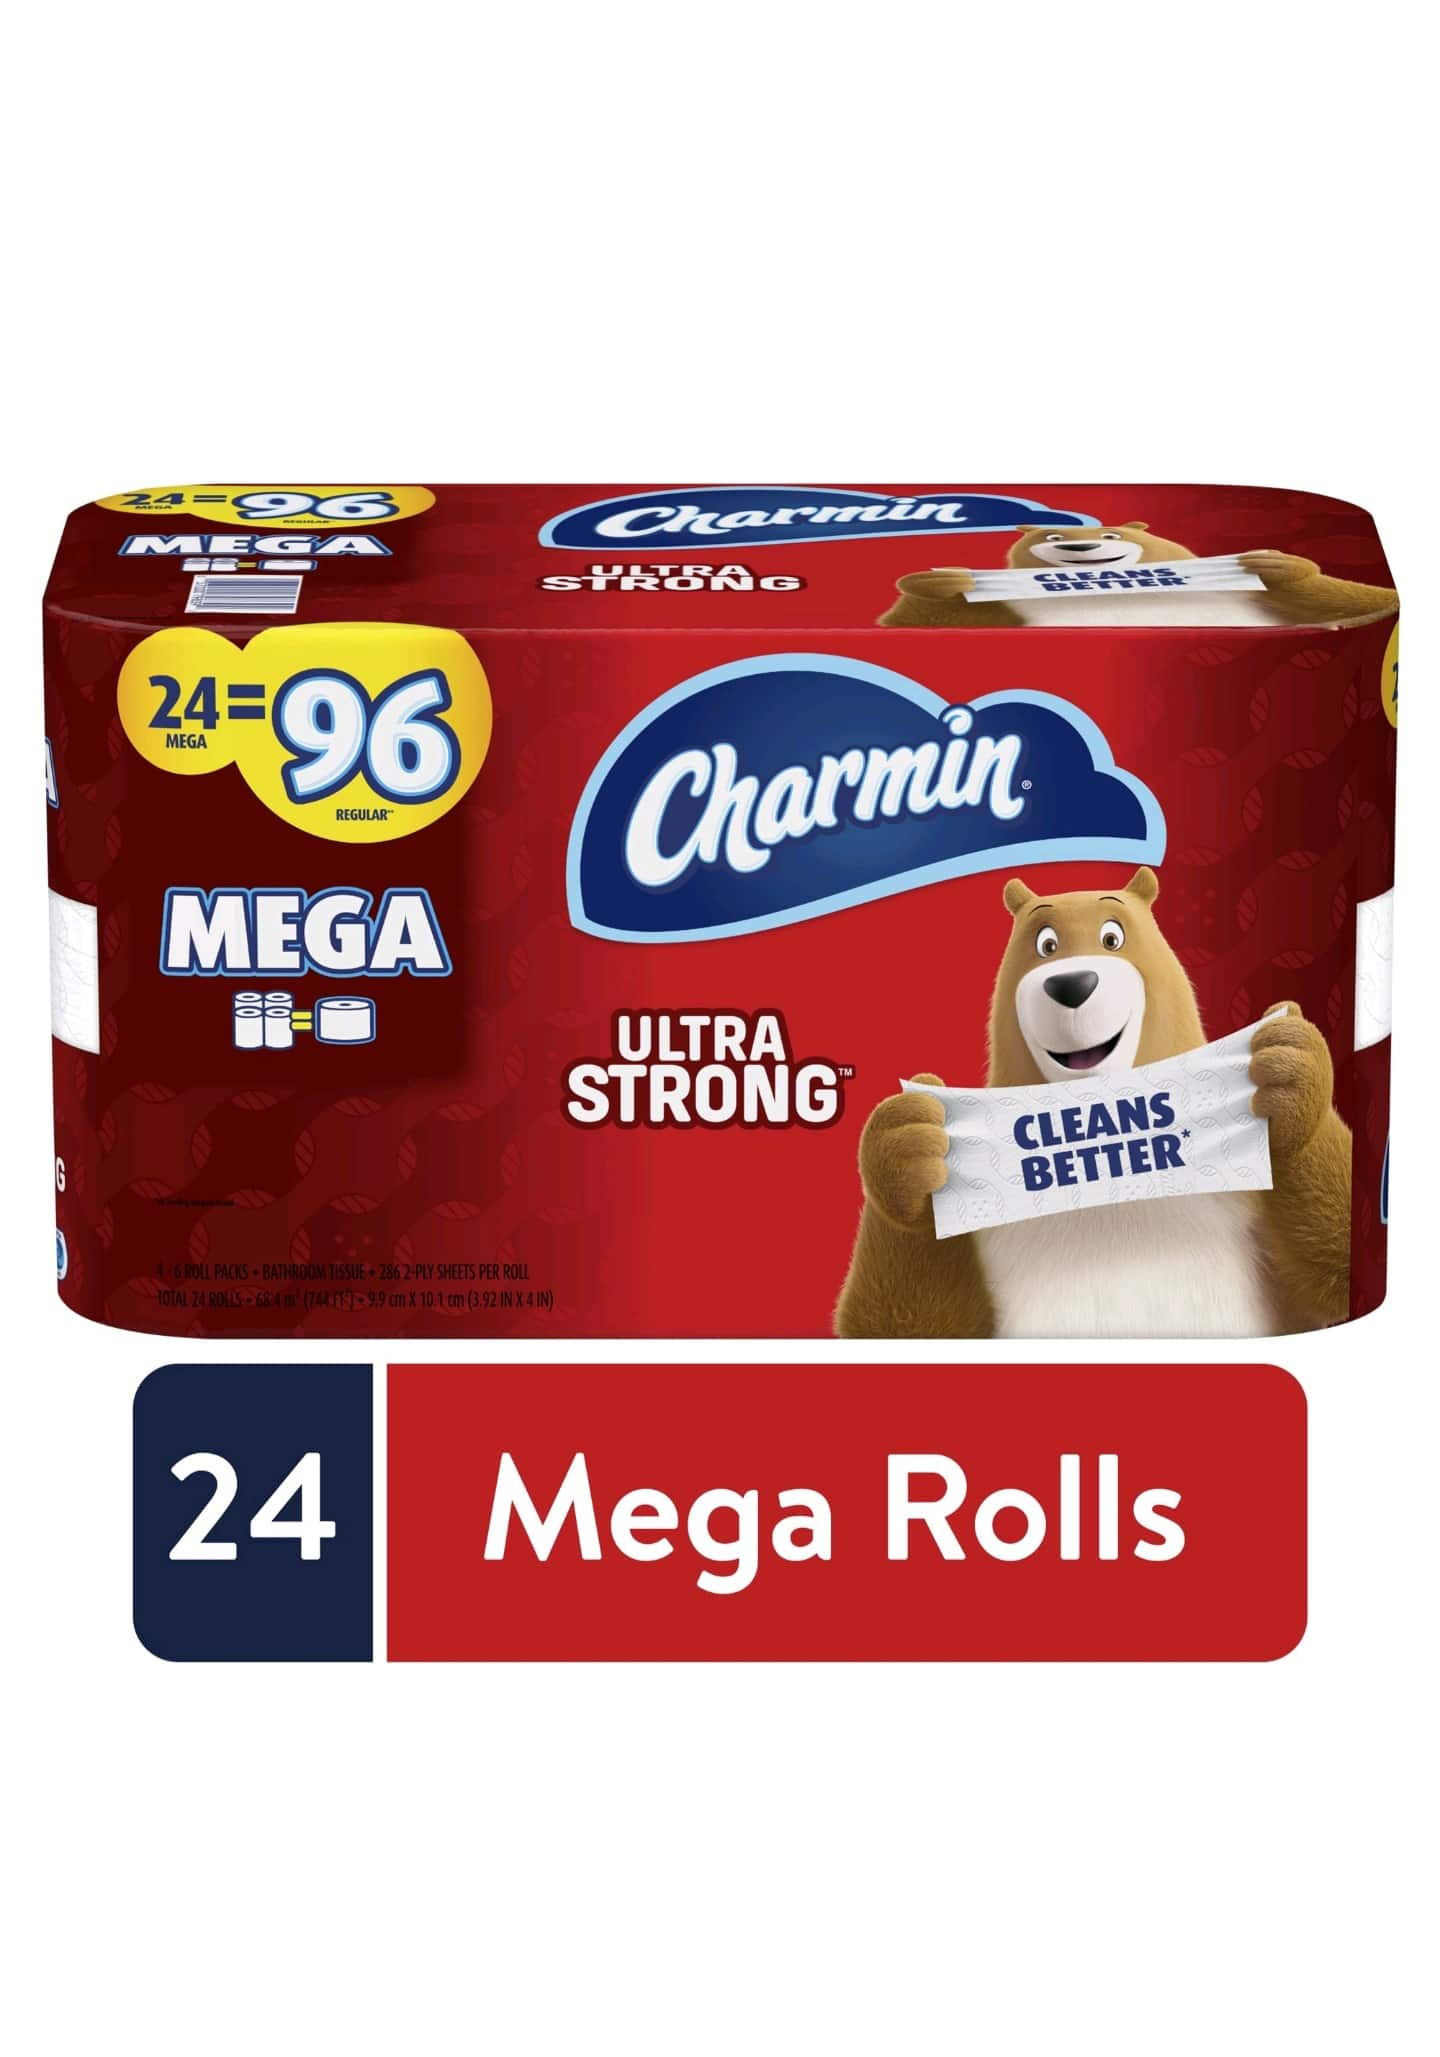 Charmin Ultra Strong Toilet Paper, 24 Mega Rolls, 6864 Sheets for $23.82 on Walmart.com